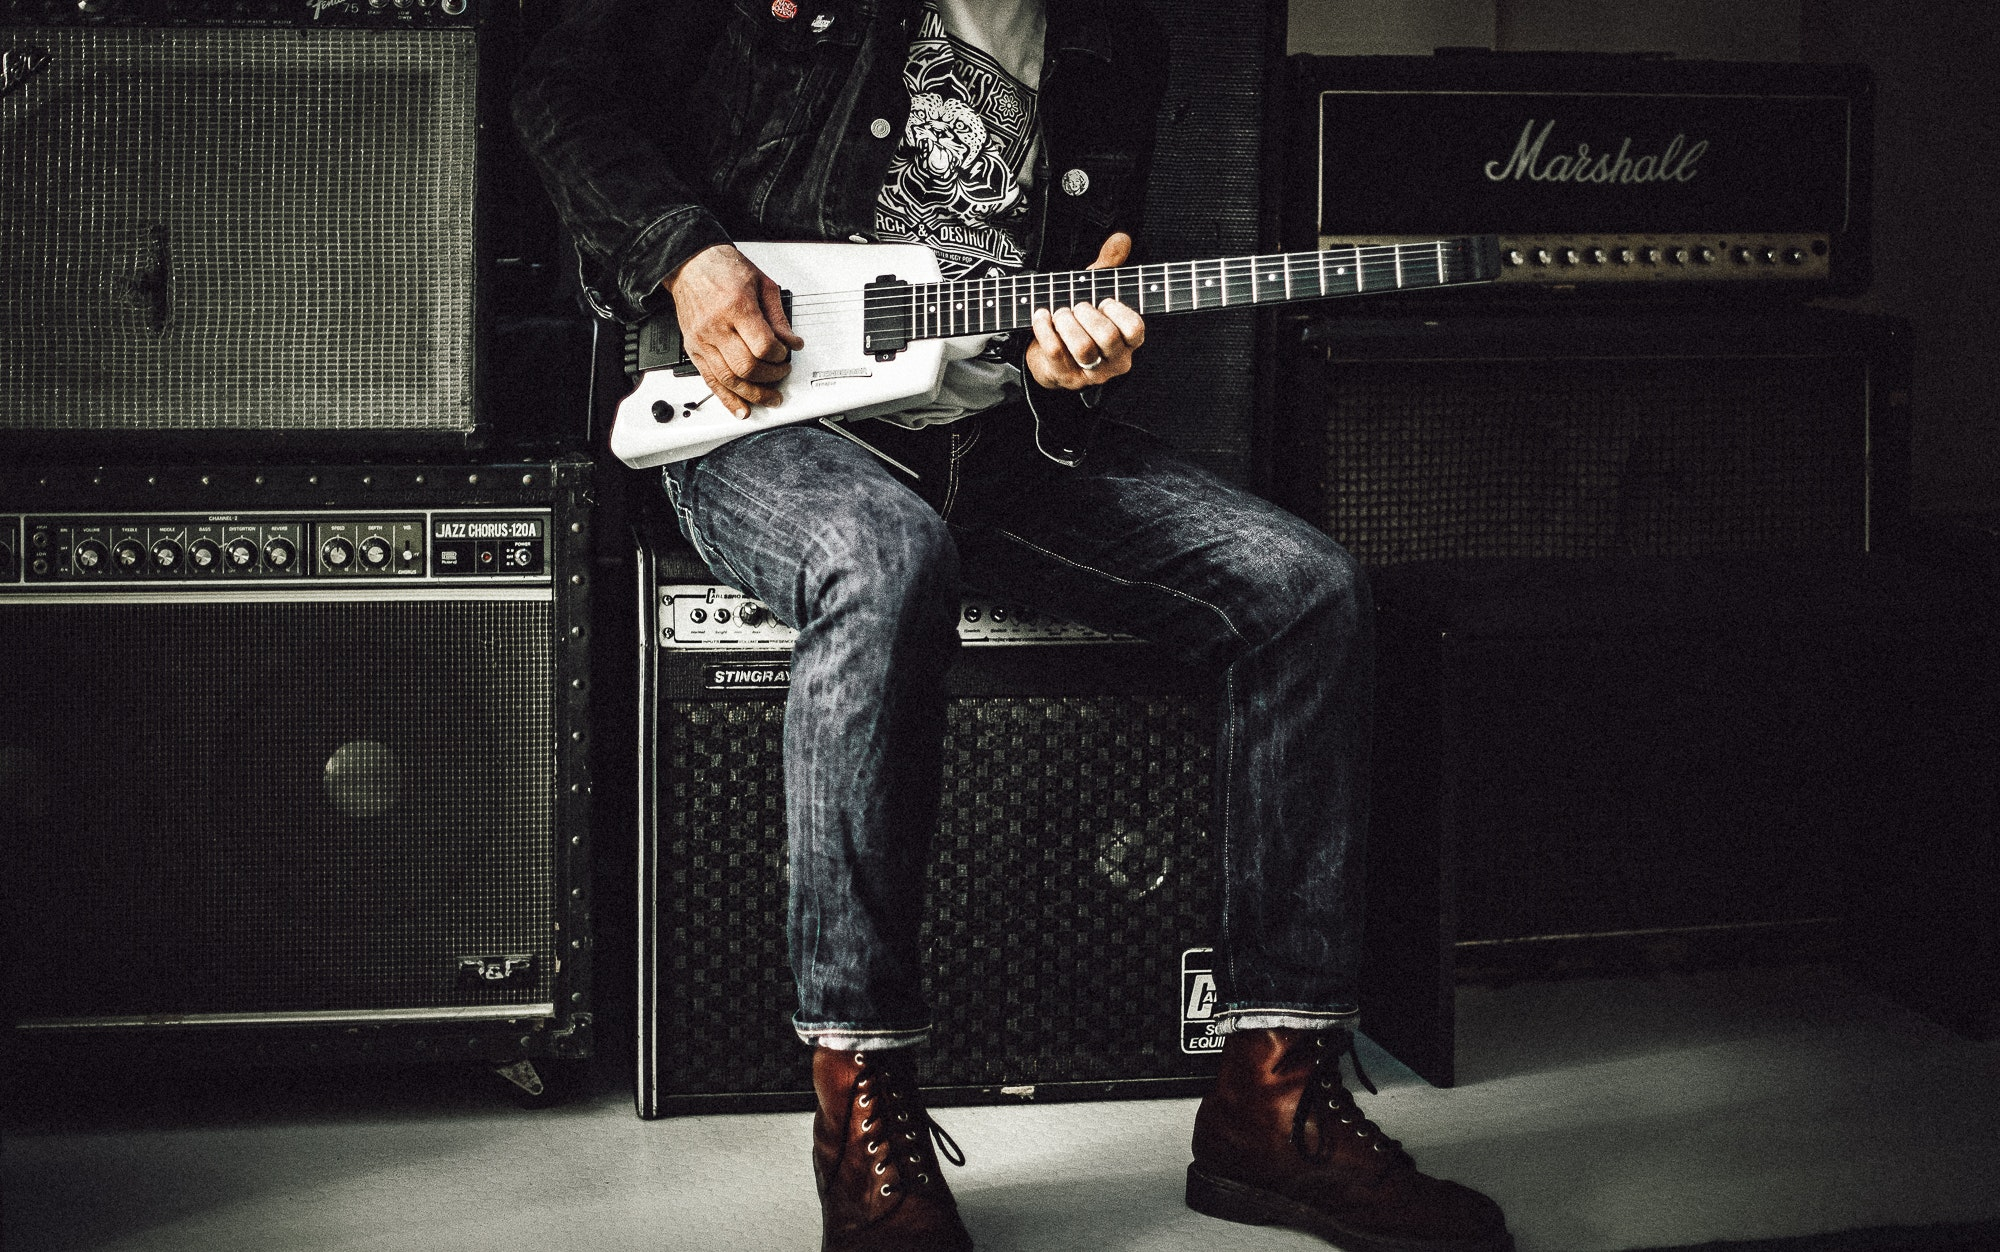 An in-depth review of the best guitar amps available in 2019.